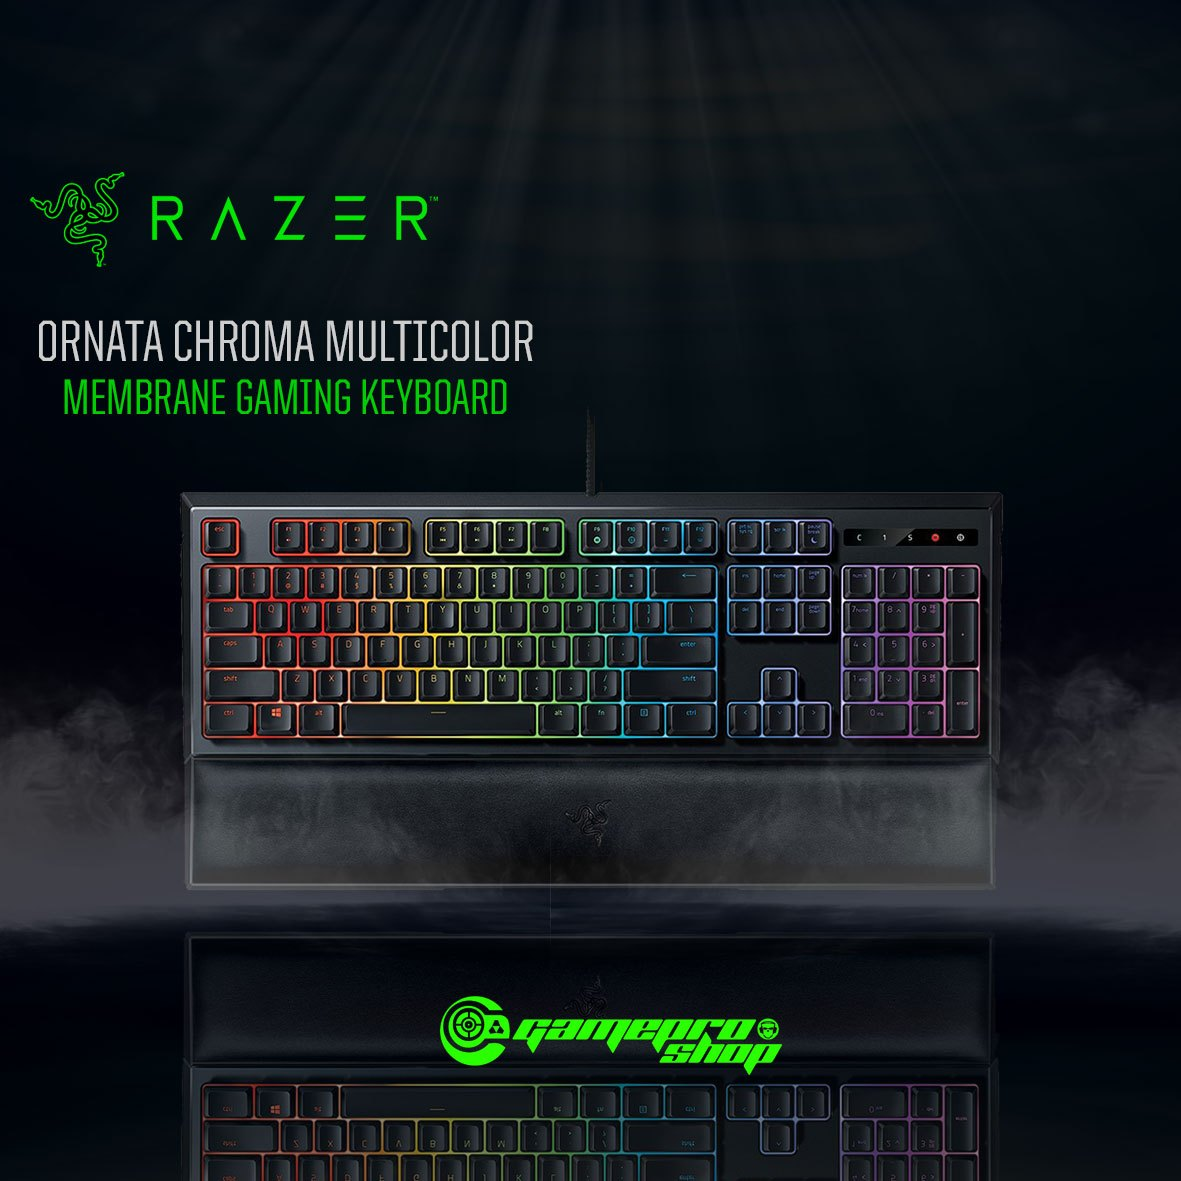 Razer Ornata Chroma Multicolor Membrane Gaming Keyboard Rz03 02040100 R3m1 1y Gamepro Shop